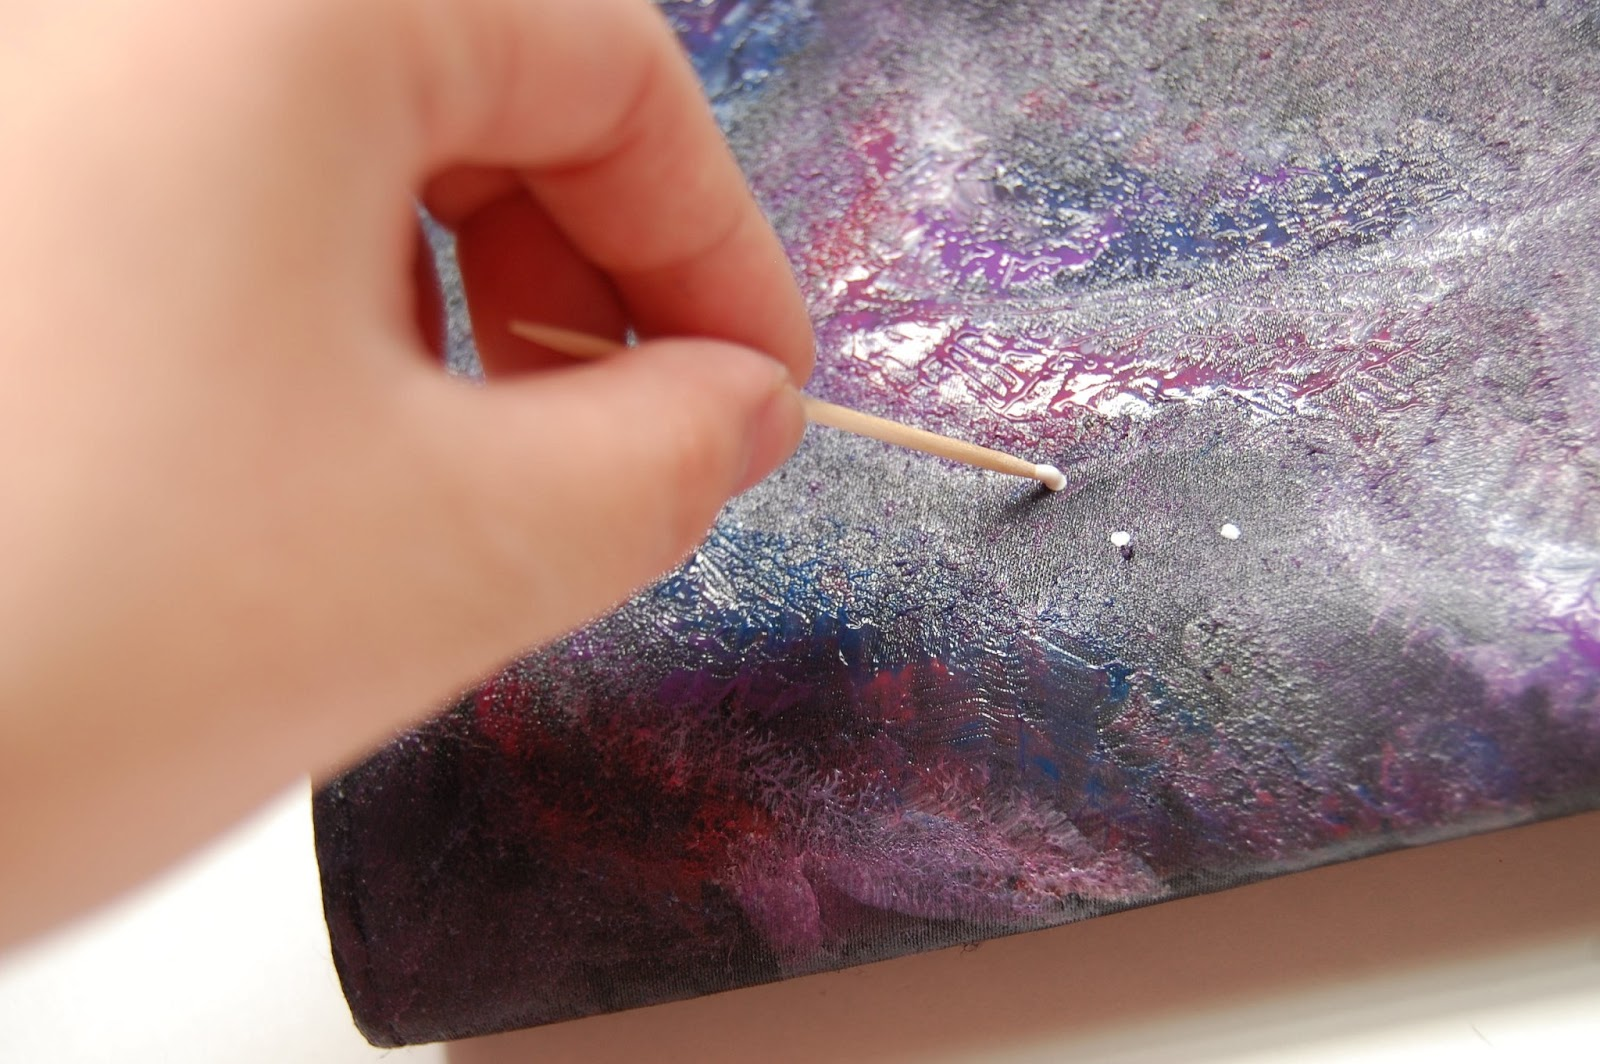 Galaxy Painting Tutorial One dip into the paint can get